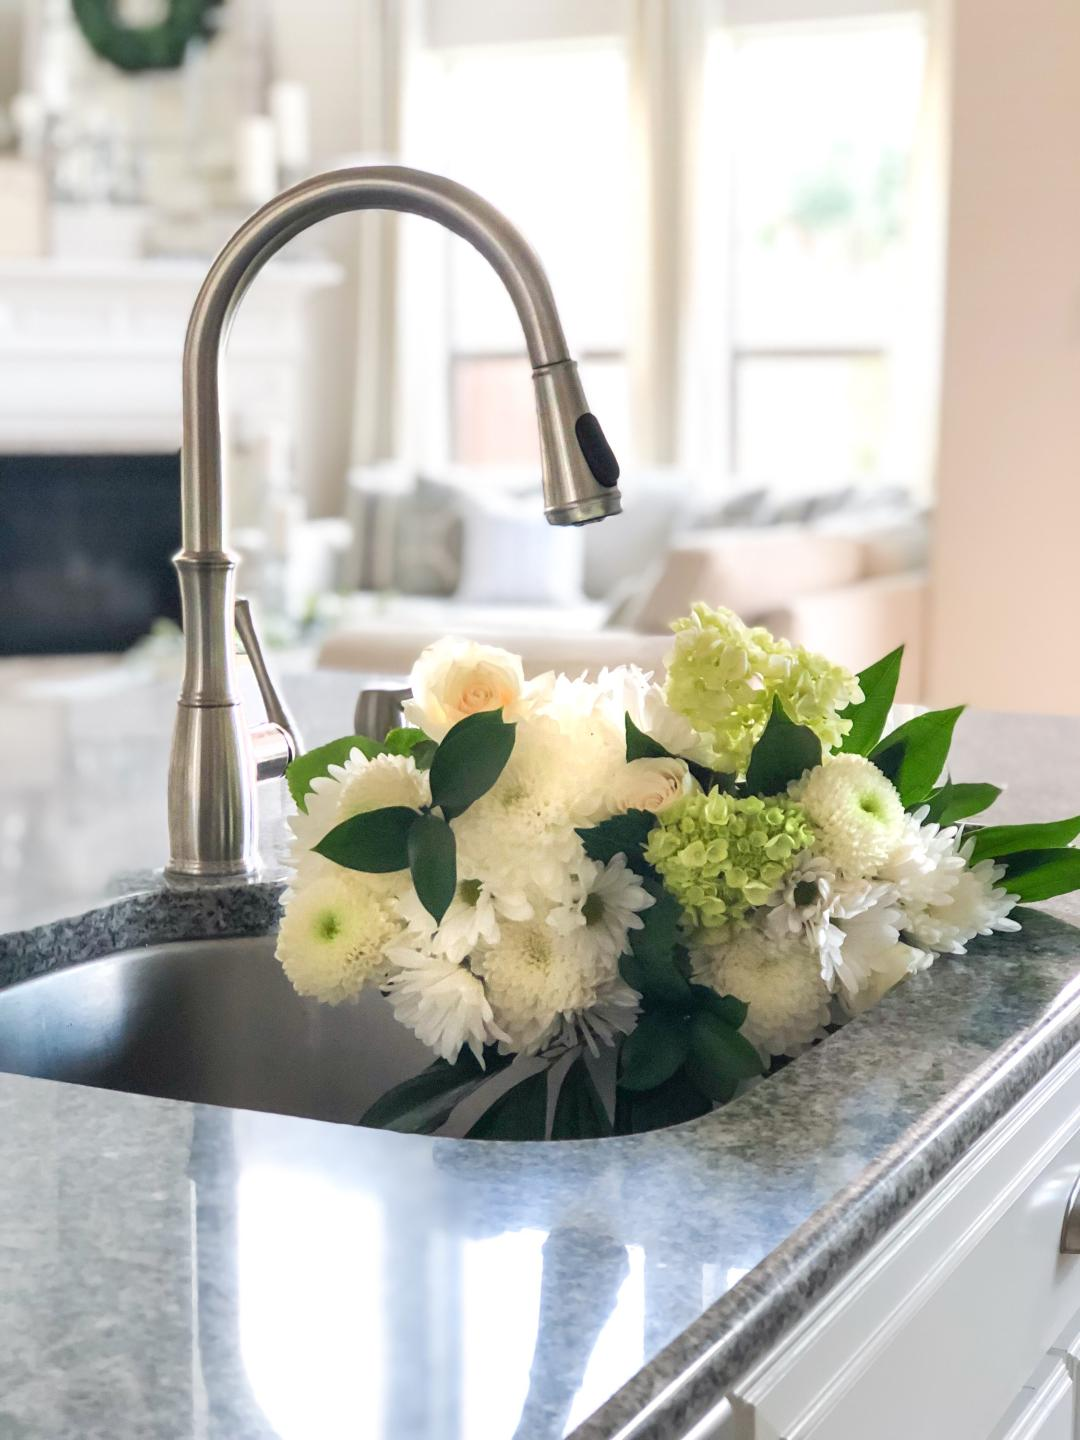 Nissa-Lynn Interiors: A New Kitchen Faucet is a Game Changer!